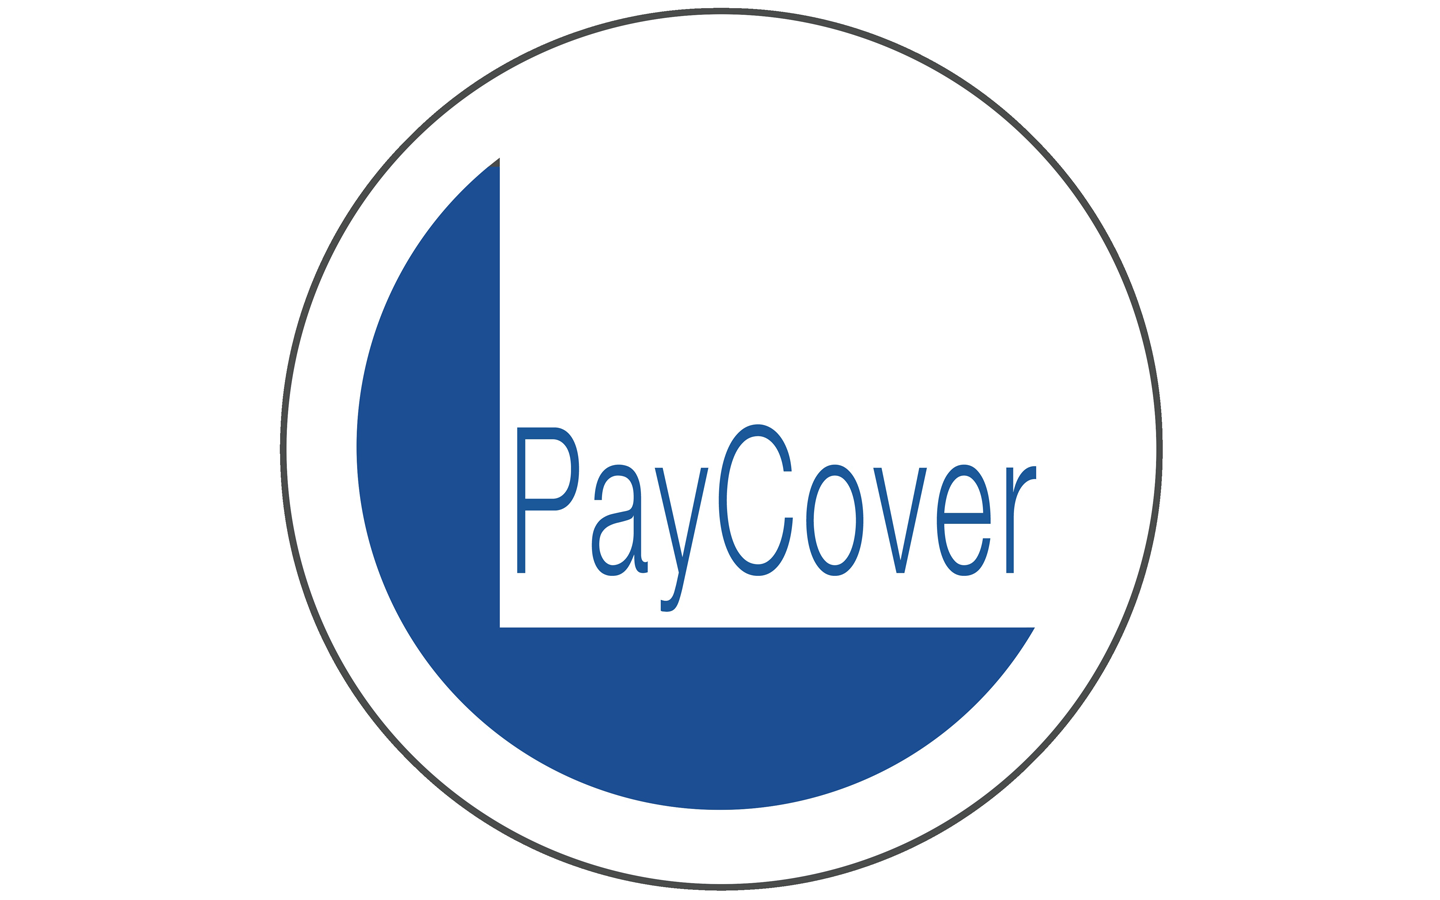 Paycover